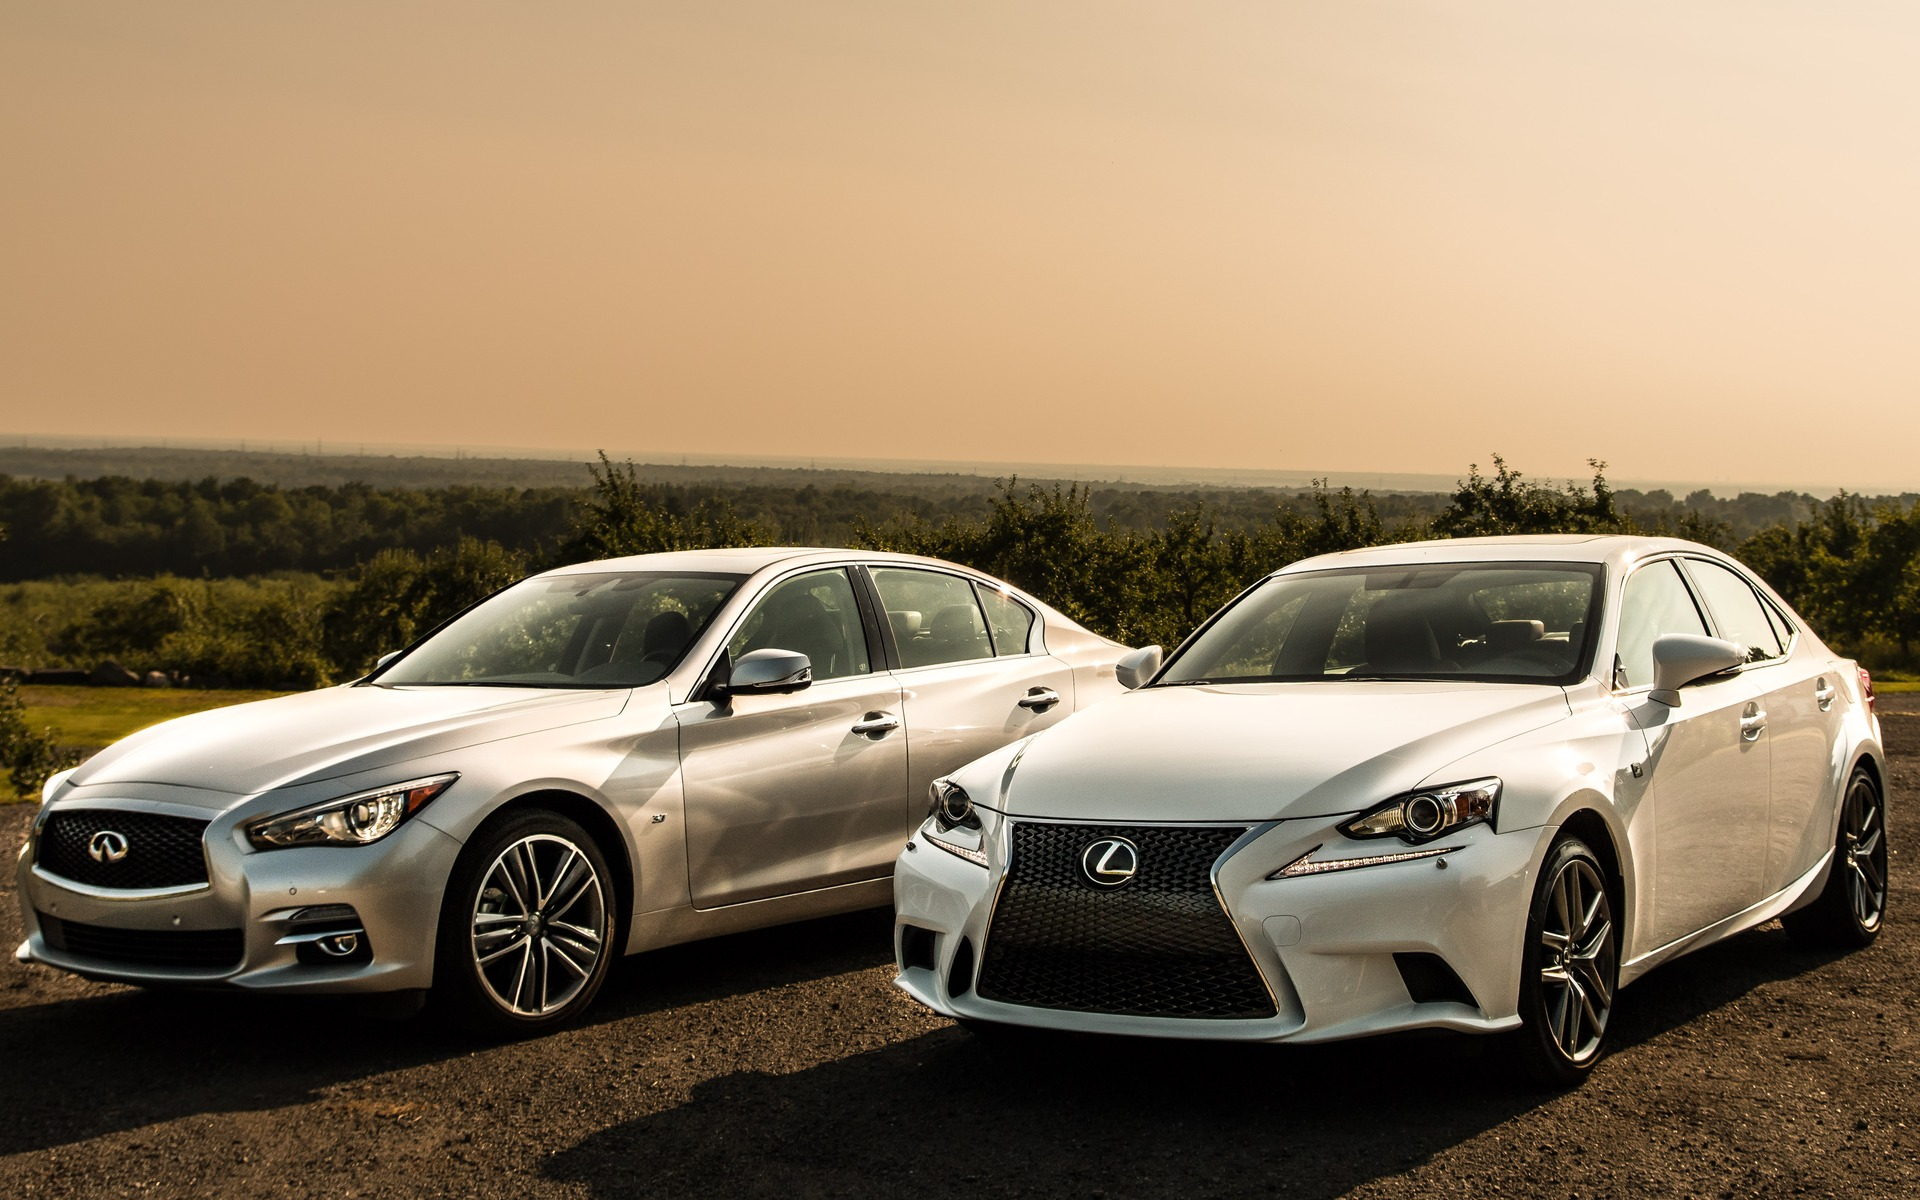 Infiniti Q50 Vs Lexus IS 350 The Devil Is In the Details The Car